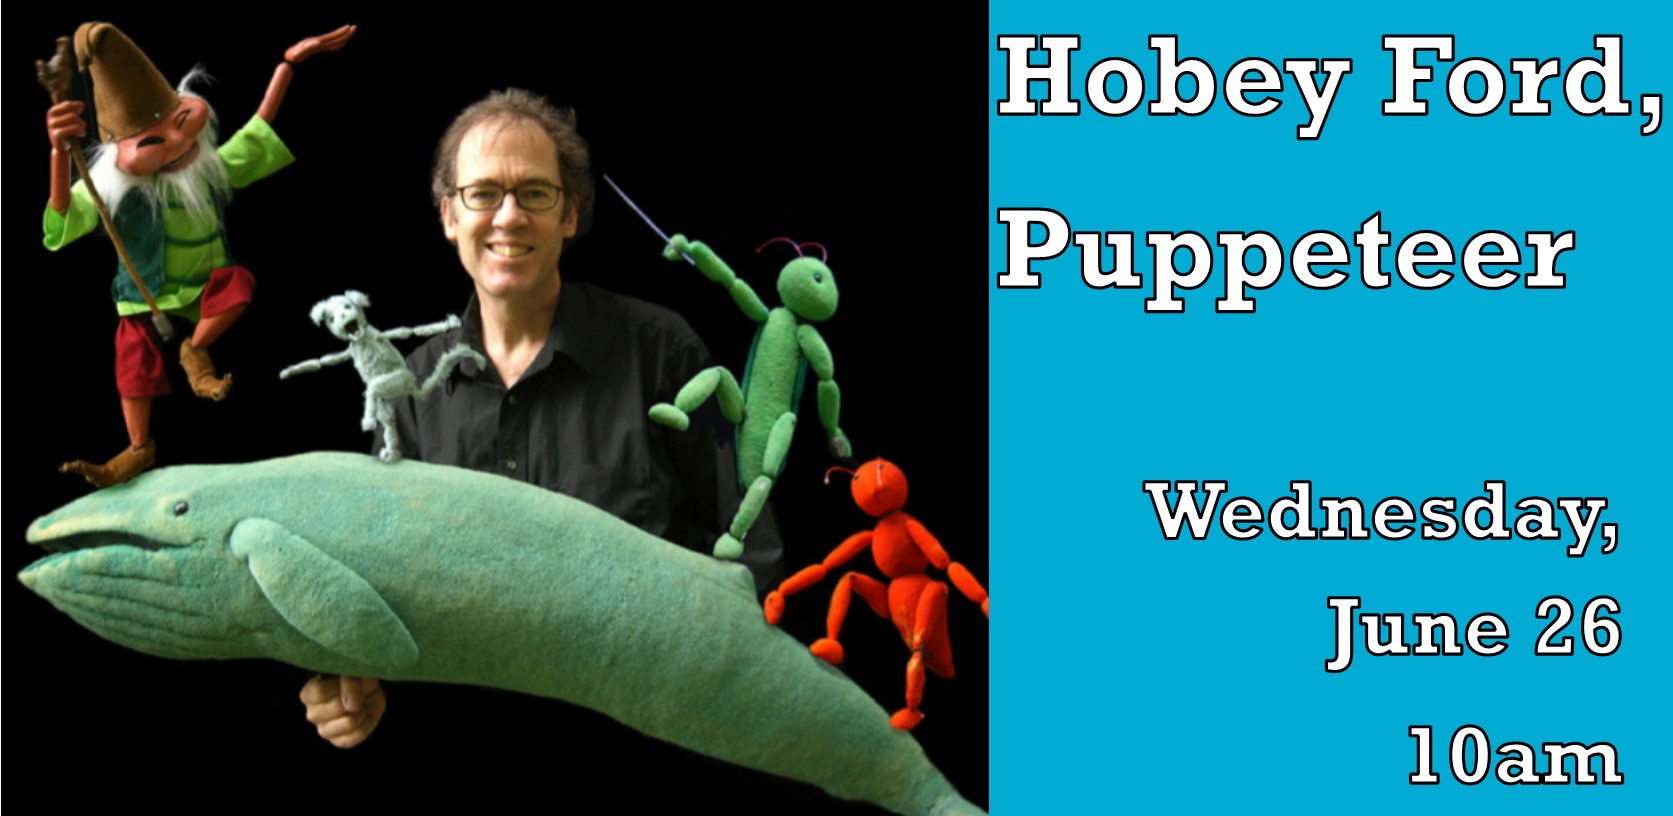 Hobey Ford, Puppeteer